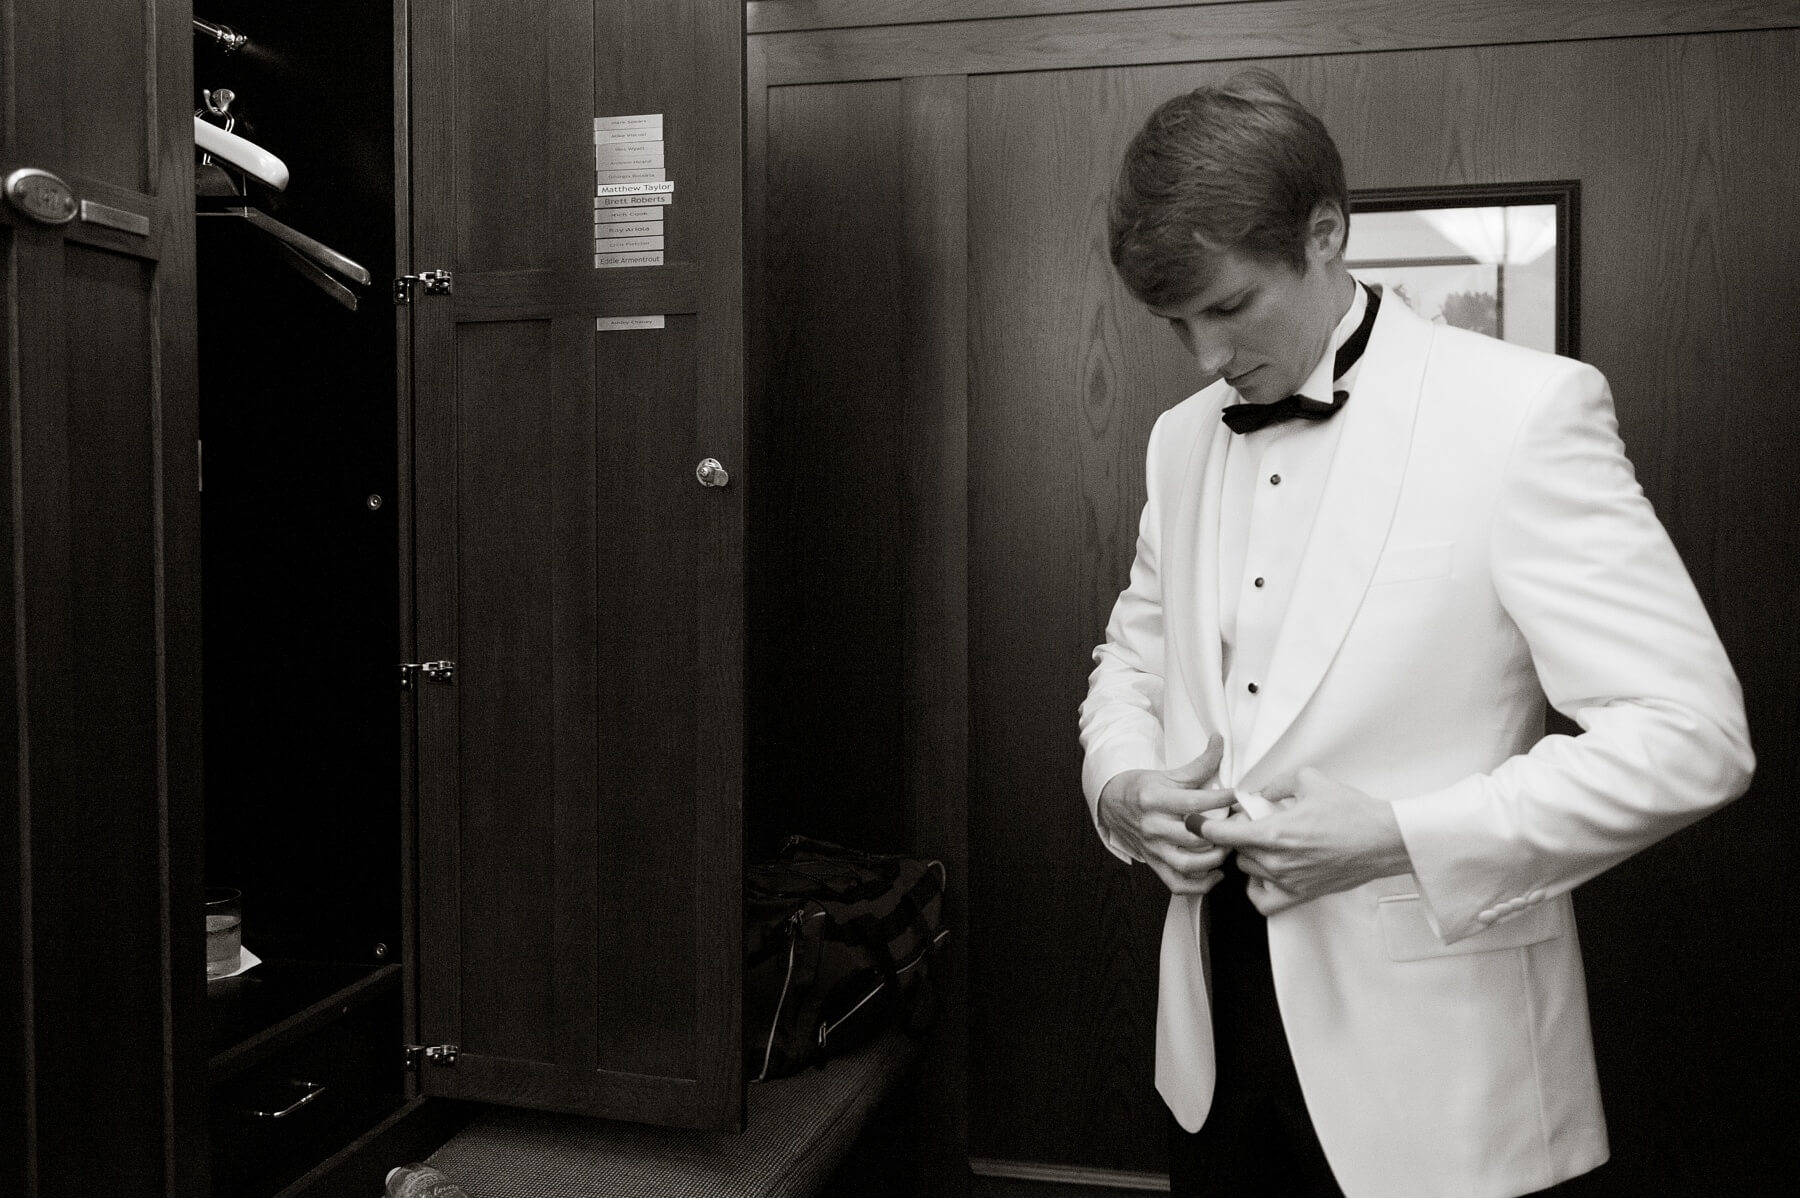 Ryan puts on the finishing touches before seeing his bride for the first time!